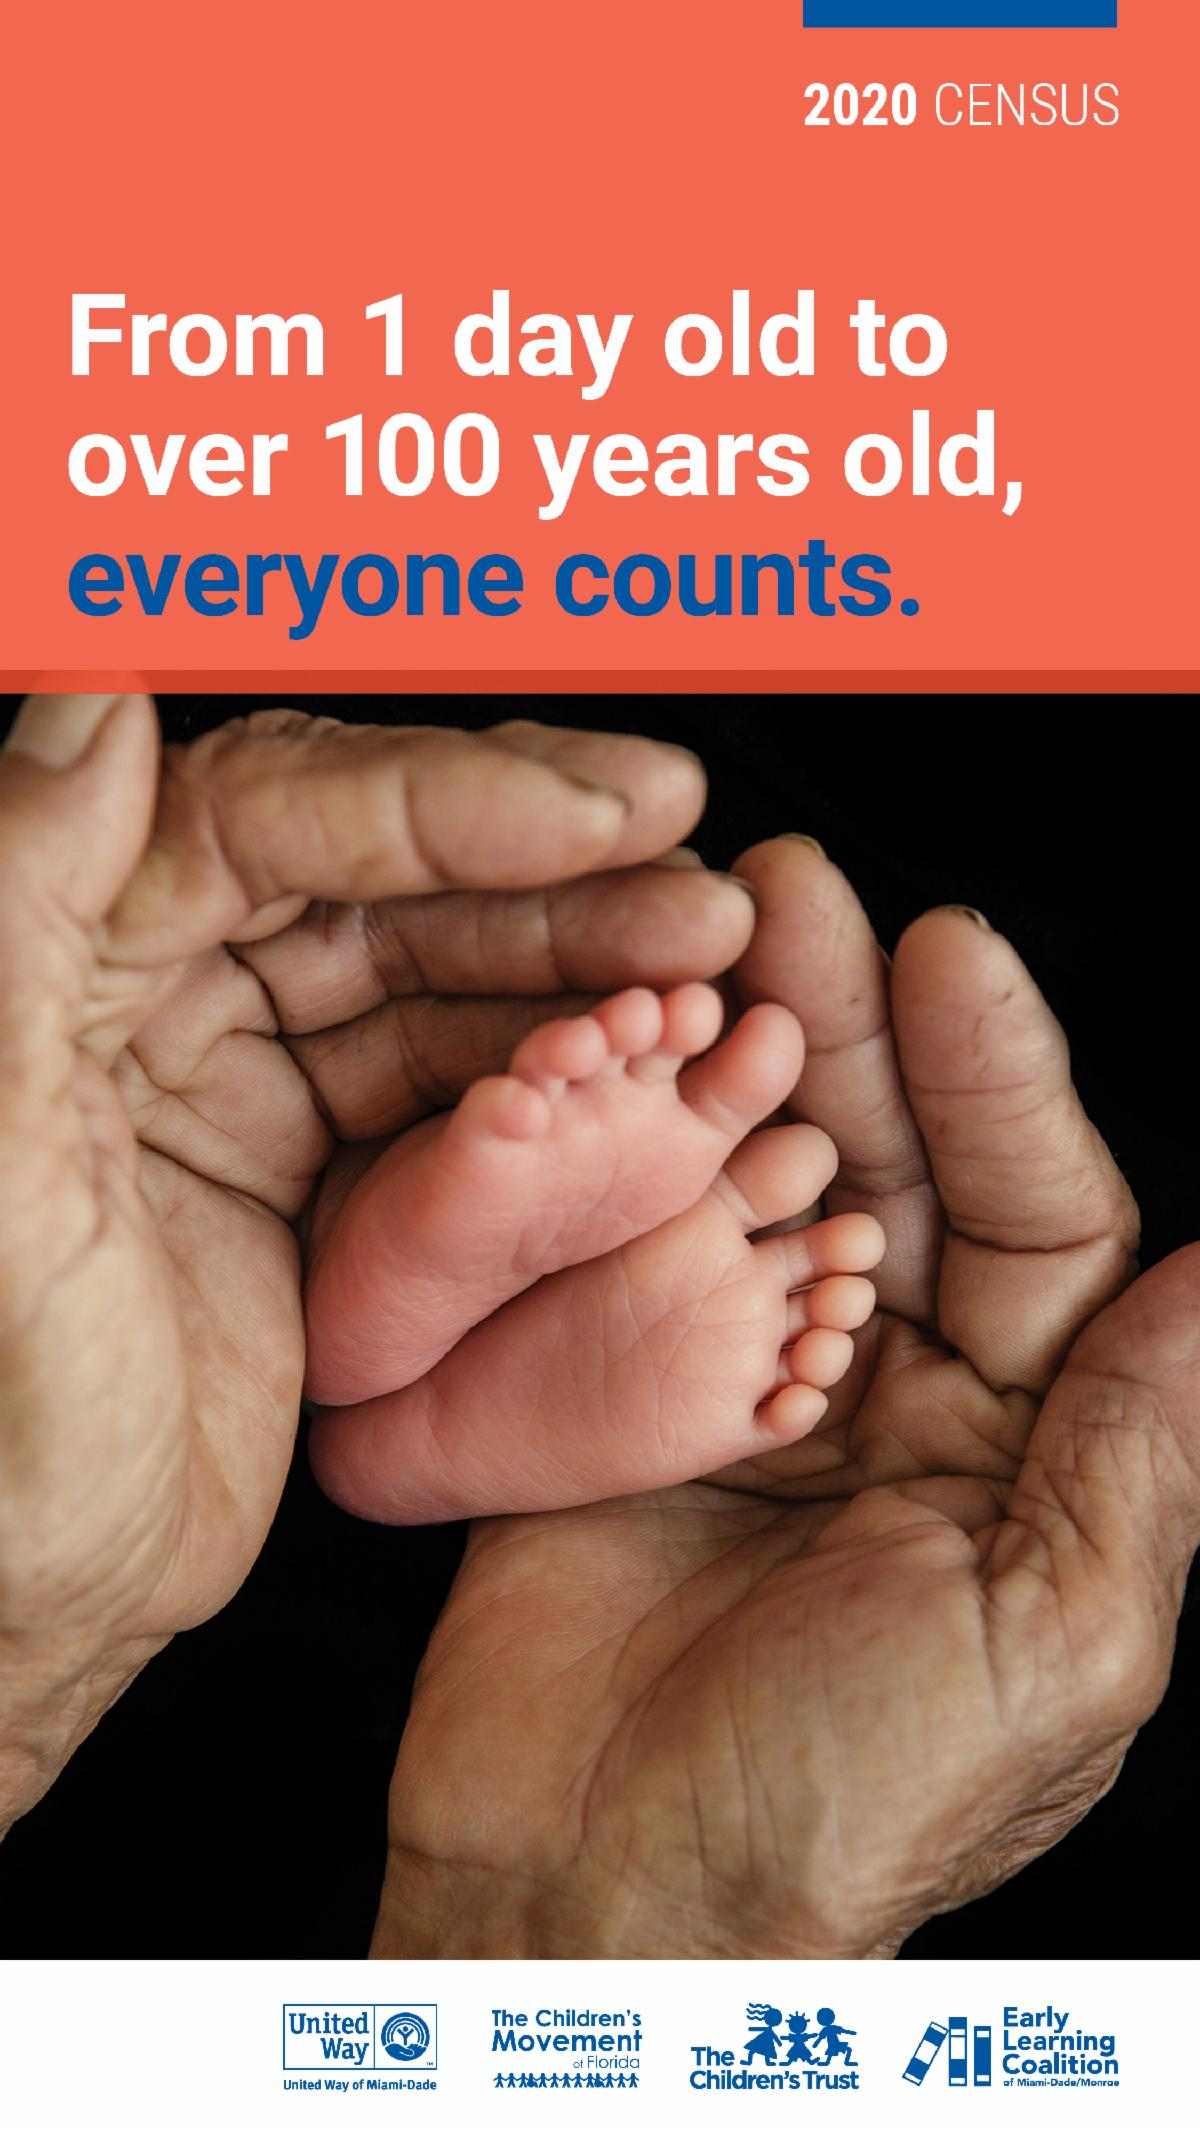 Everyone Counts - Census 2020 - Father's hands and baby's feet pictured